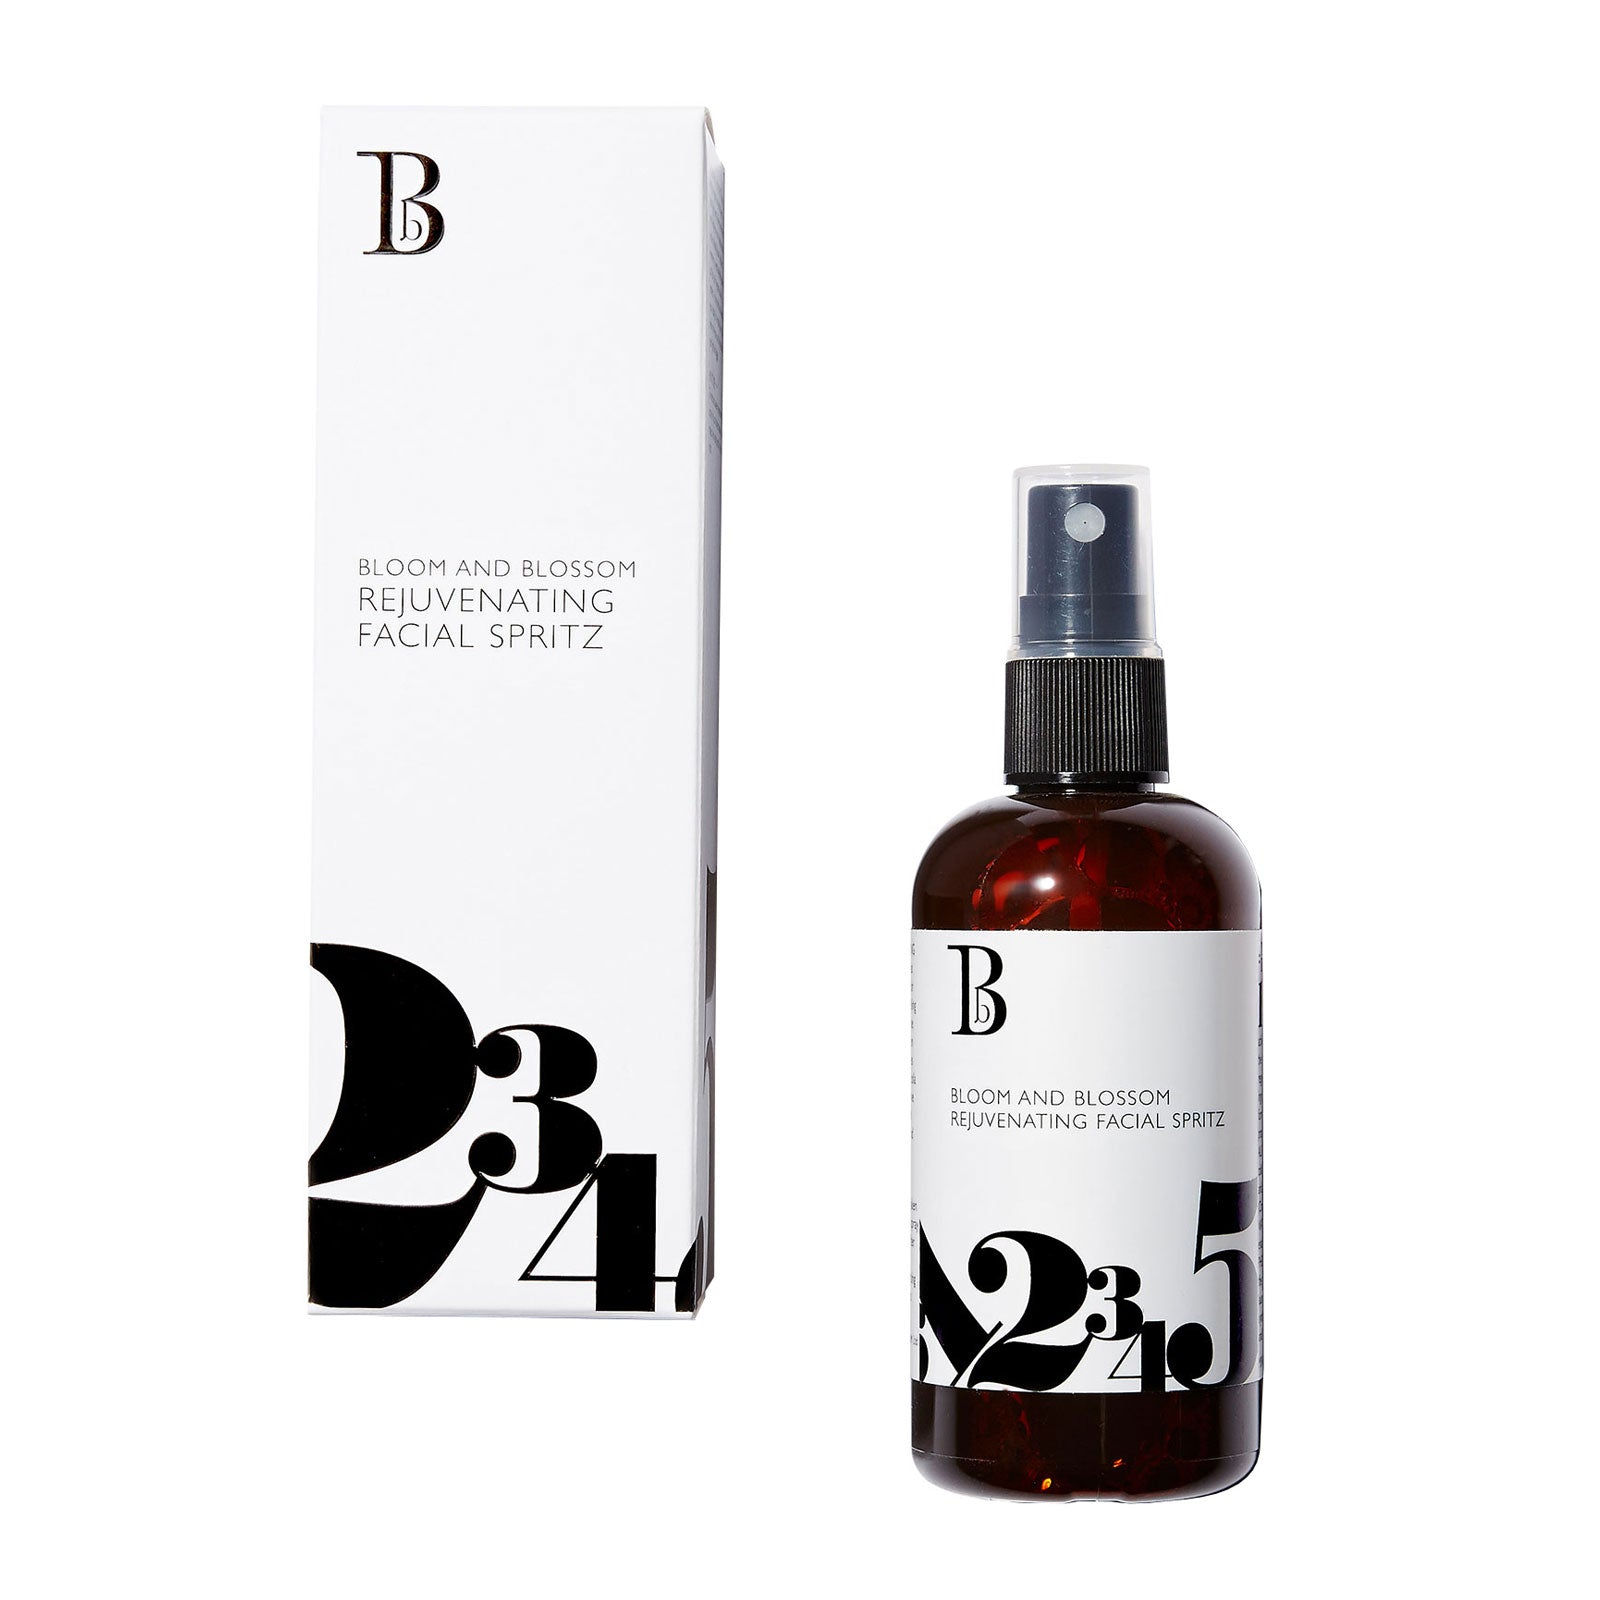 Bloom and Blossom Rejuvenating Facial Spritz 100ml